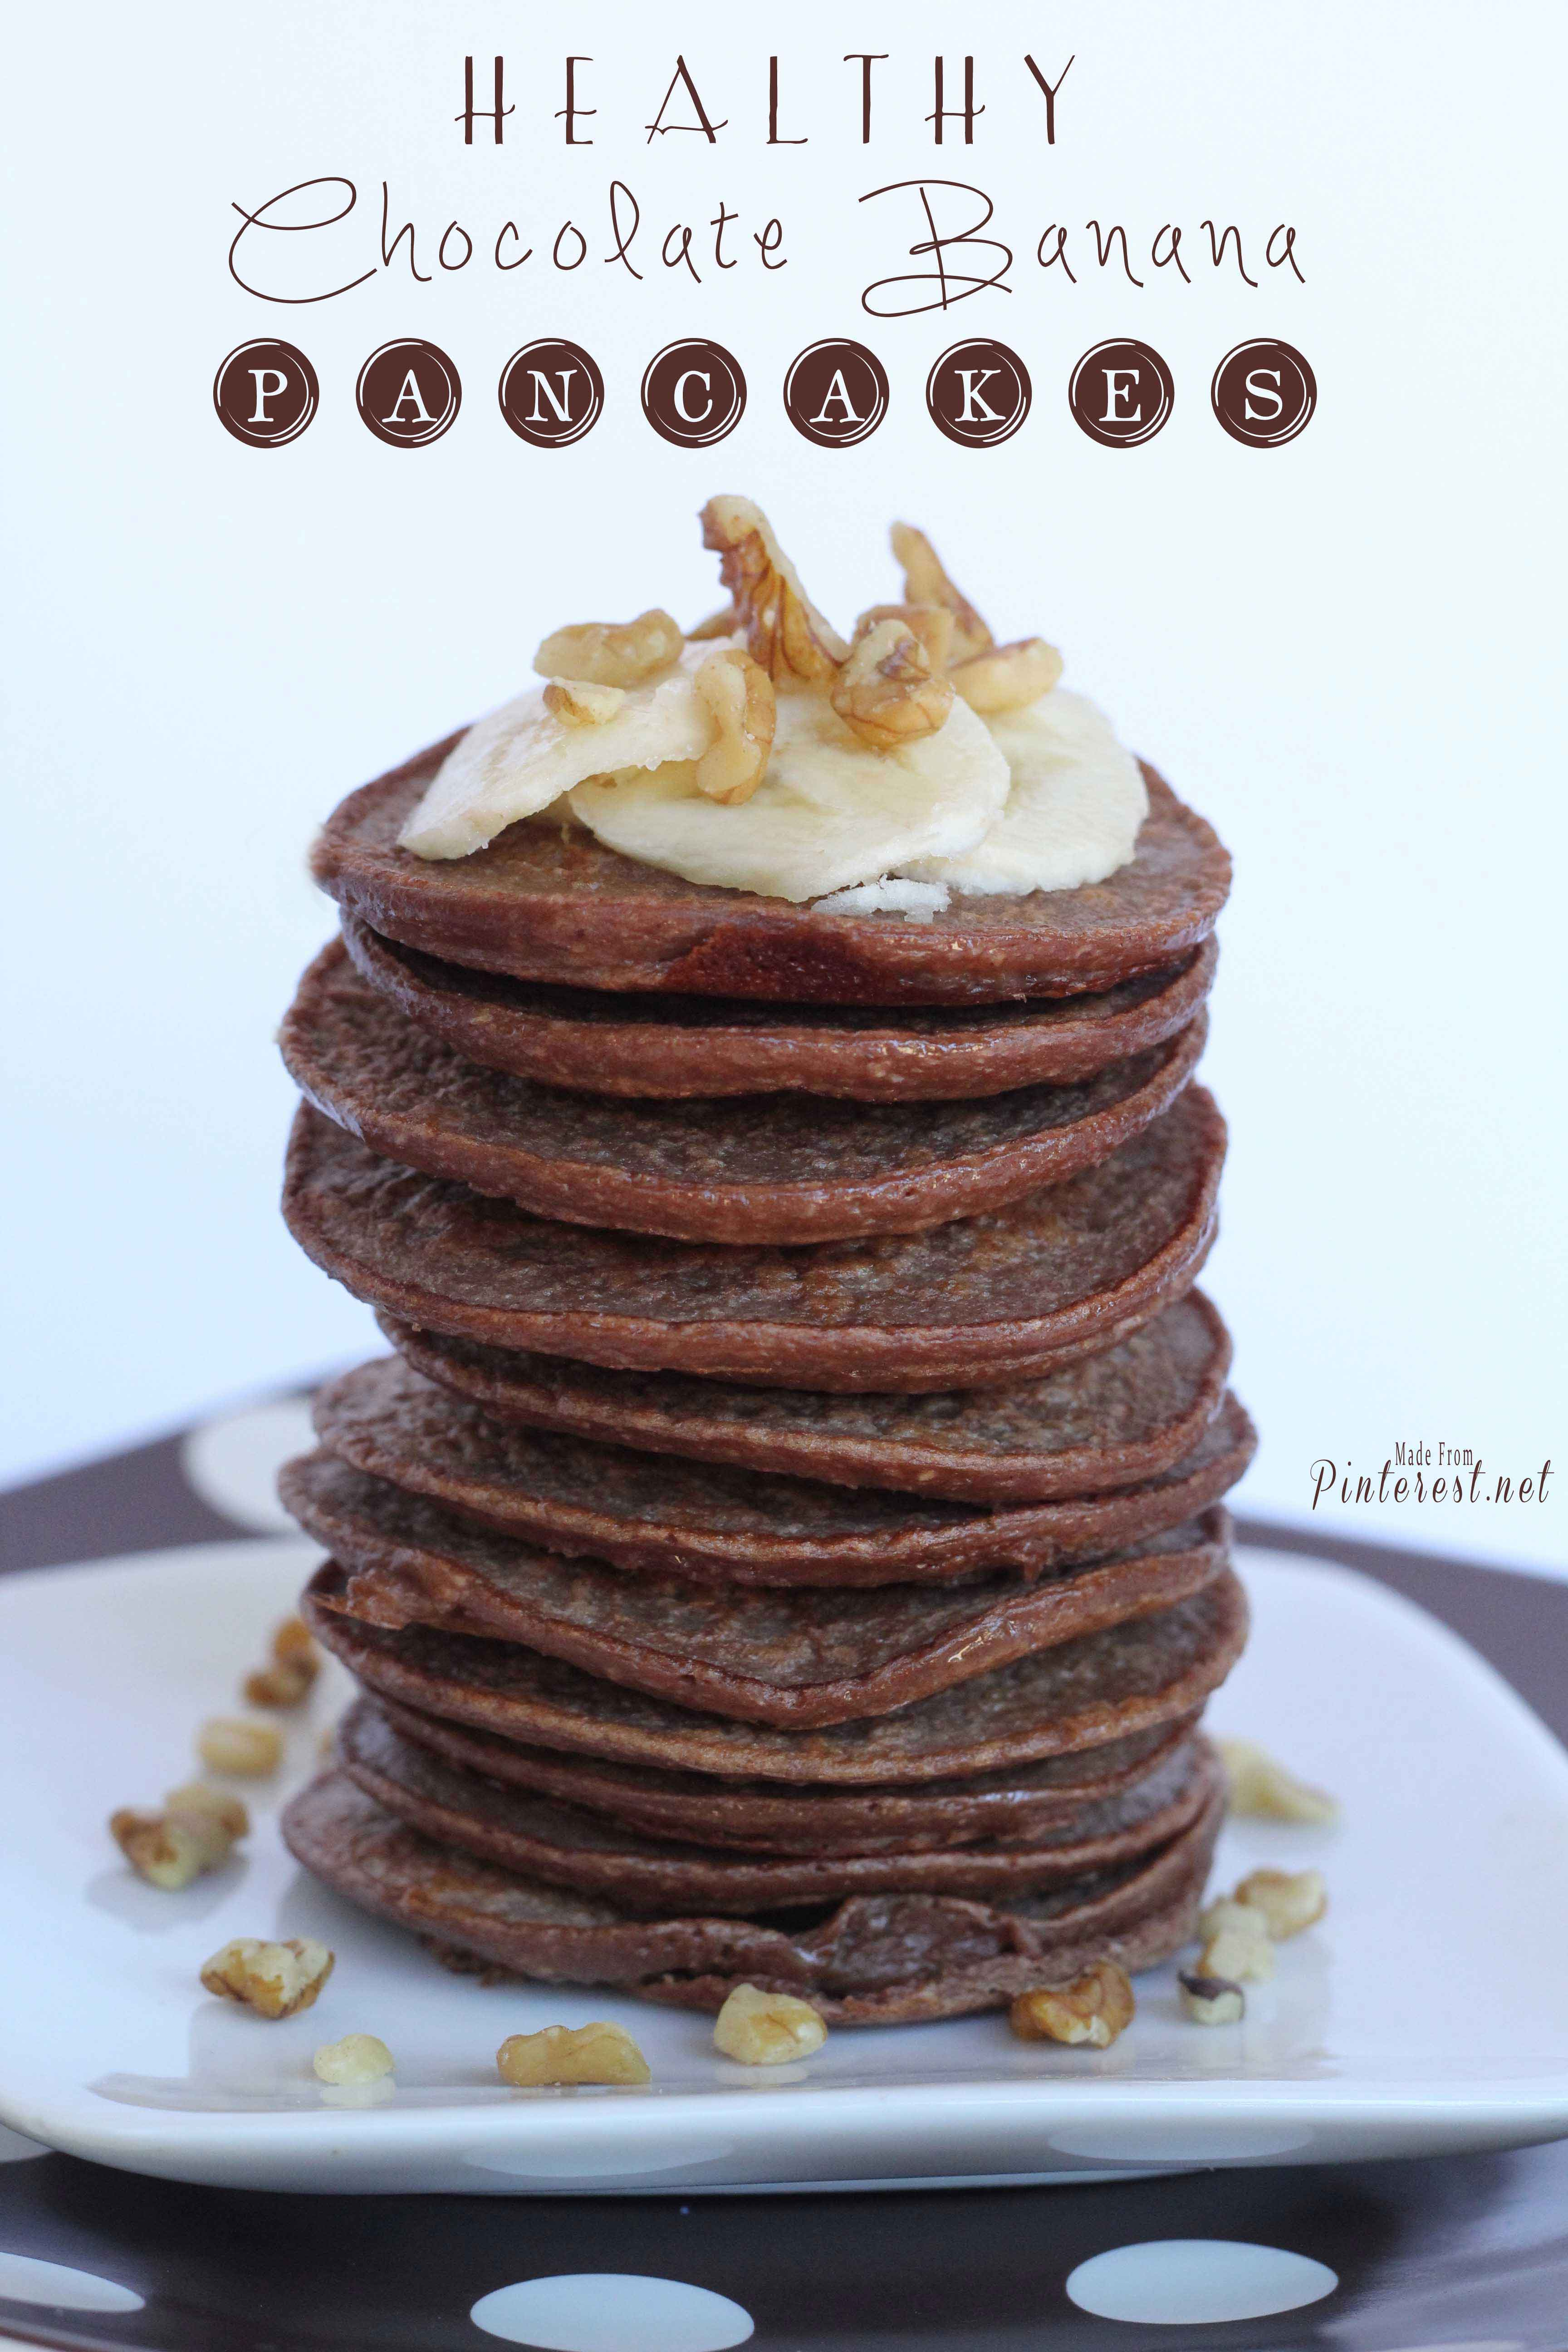 Healthy Chocolate Banana Pancakes - Tested and reviewed by one of the 3 crazy sisters at https://www.thisgrandmaisfun.com